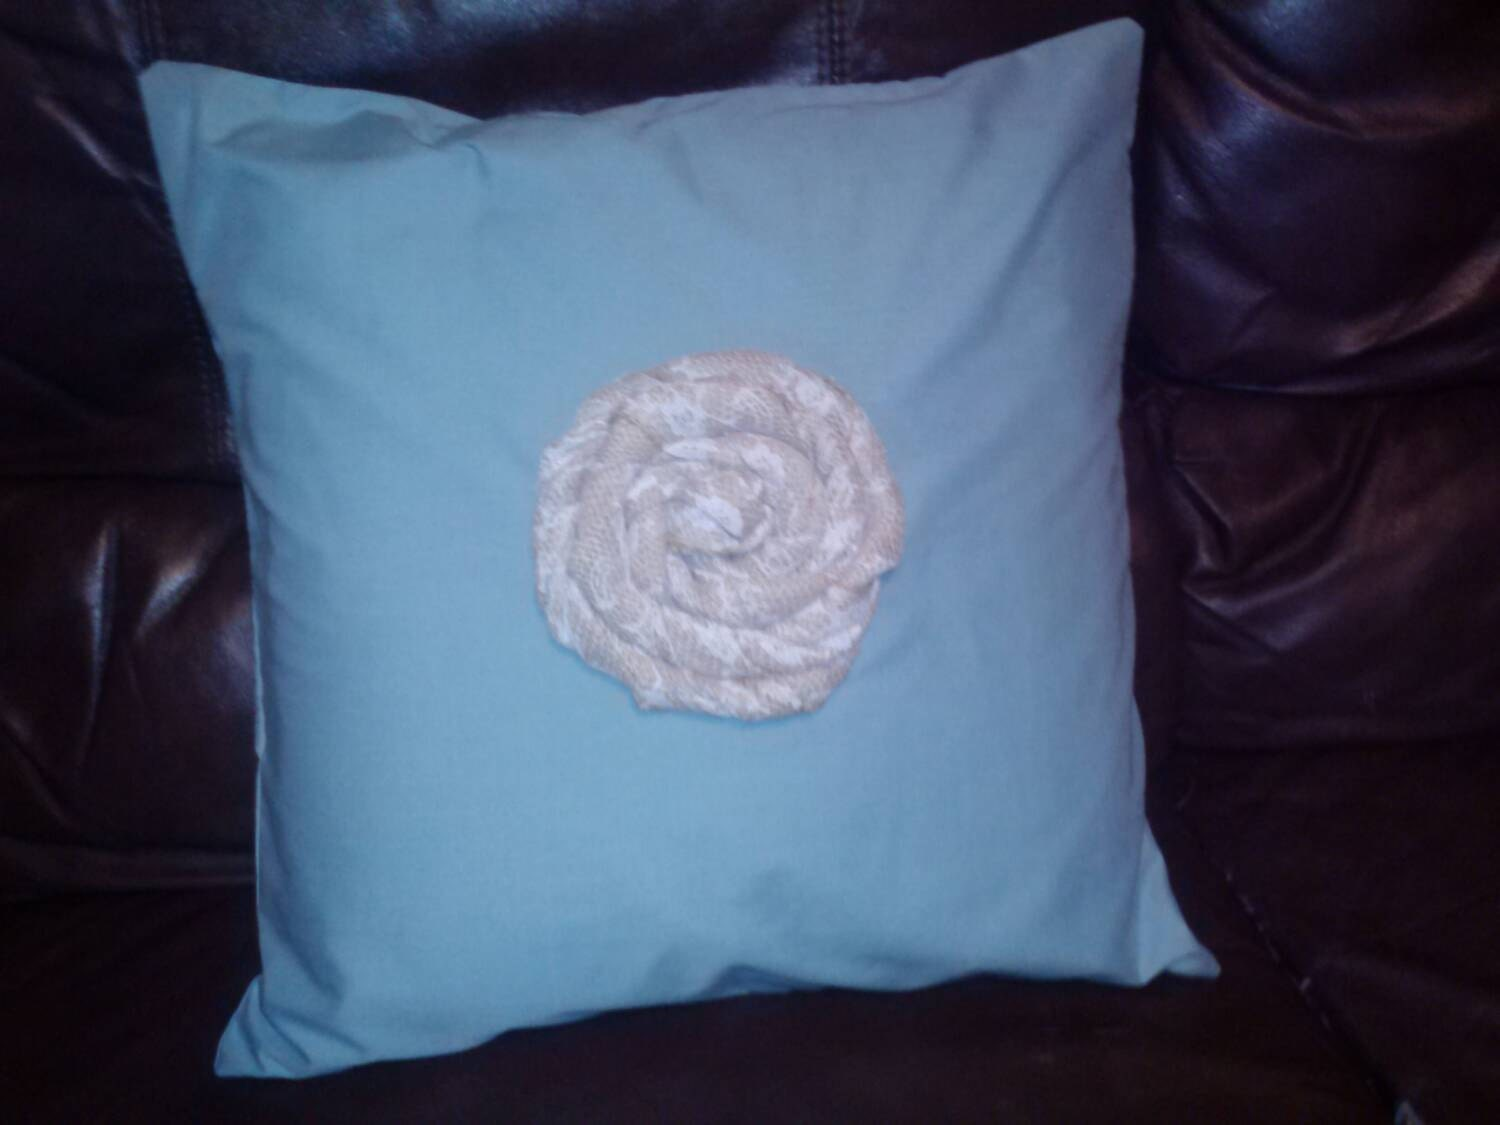 12 x 12 in blue pillow cover with lace covered burlap Rosette.